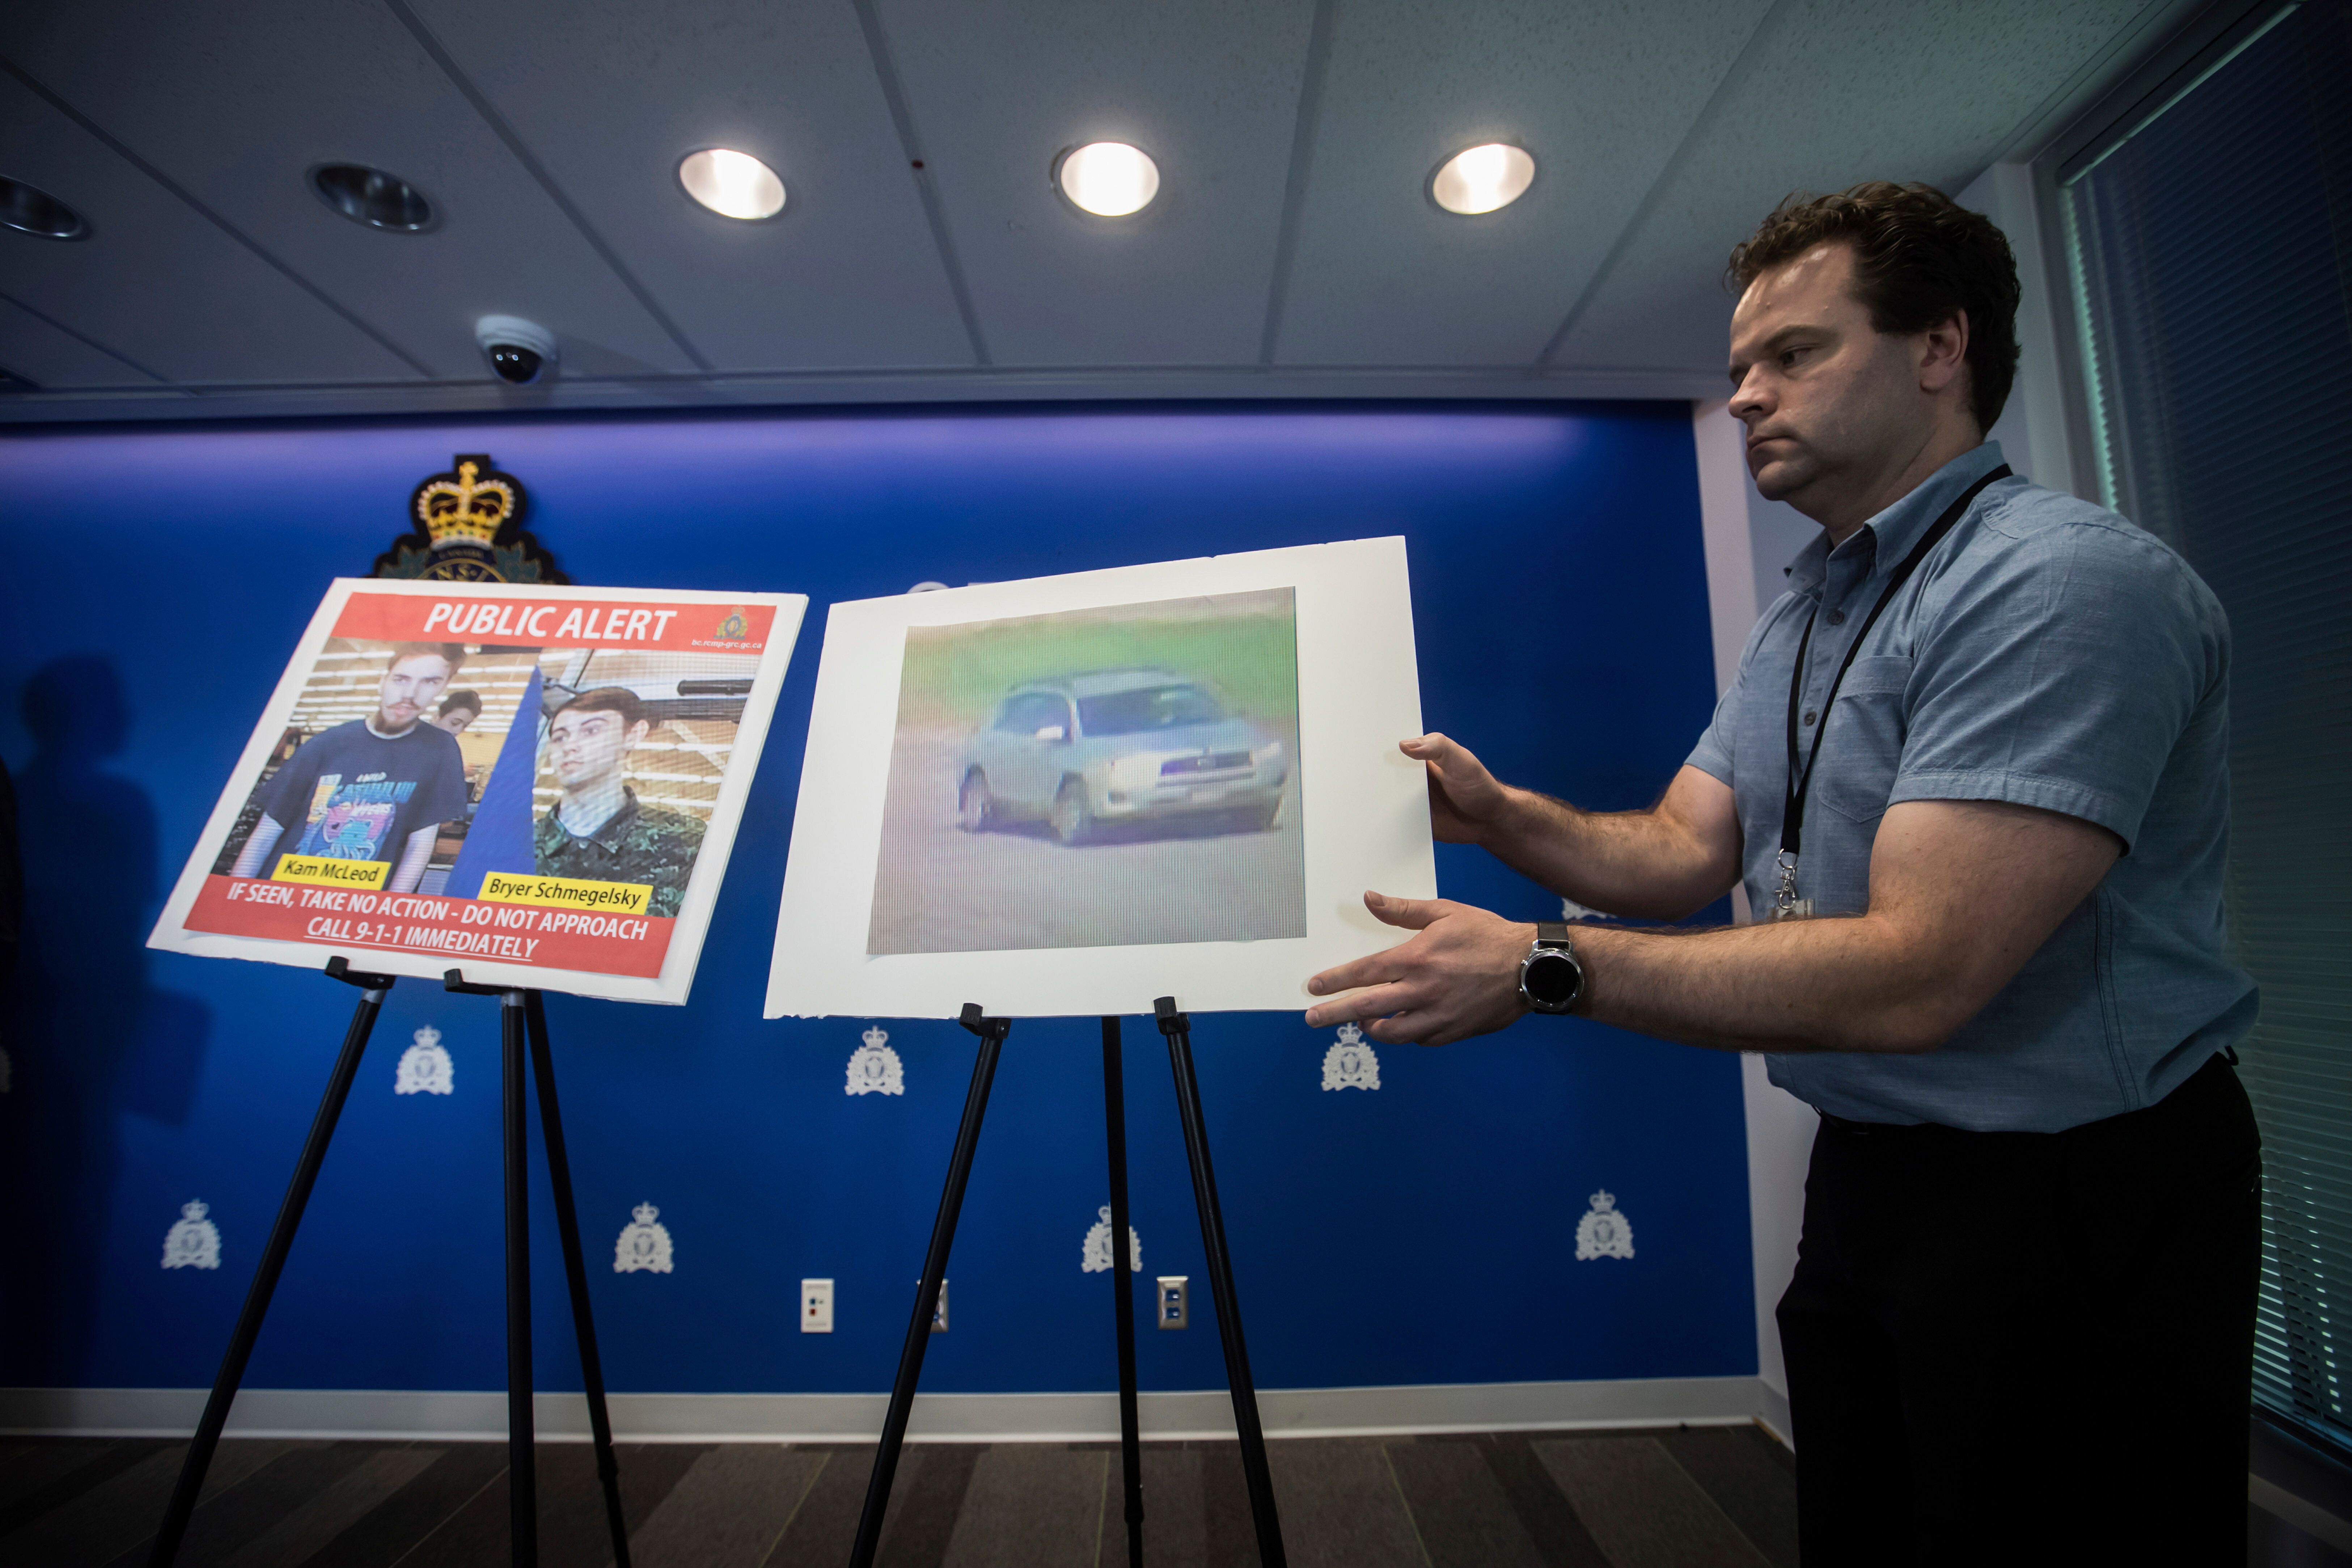 Security camera images of Kam McLeod, 19, and Bryer Schmegelsky, 18, and a Toyota RAV4 SUV are placed on display before an Ro